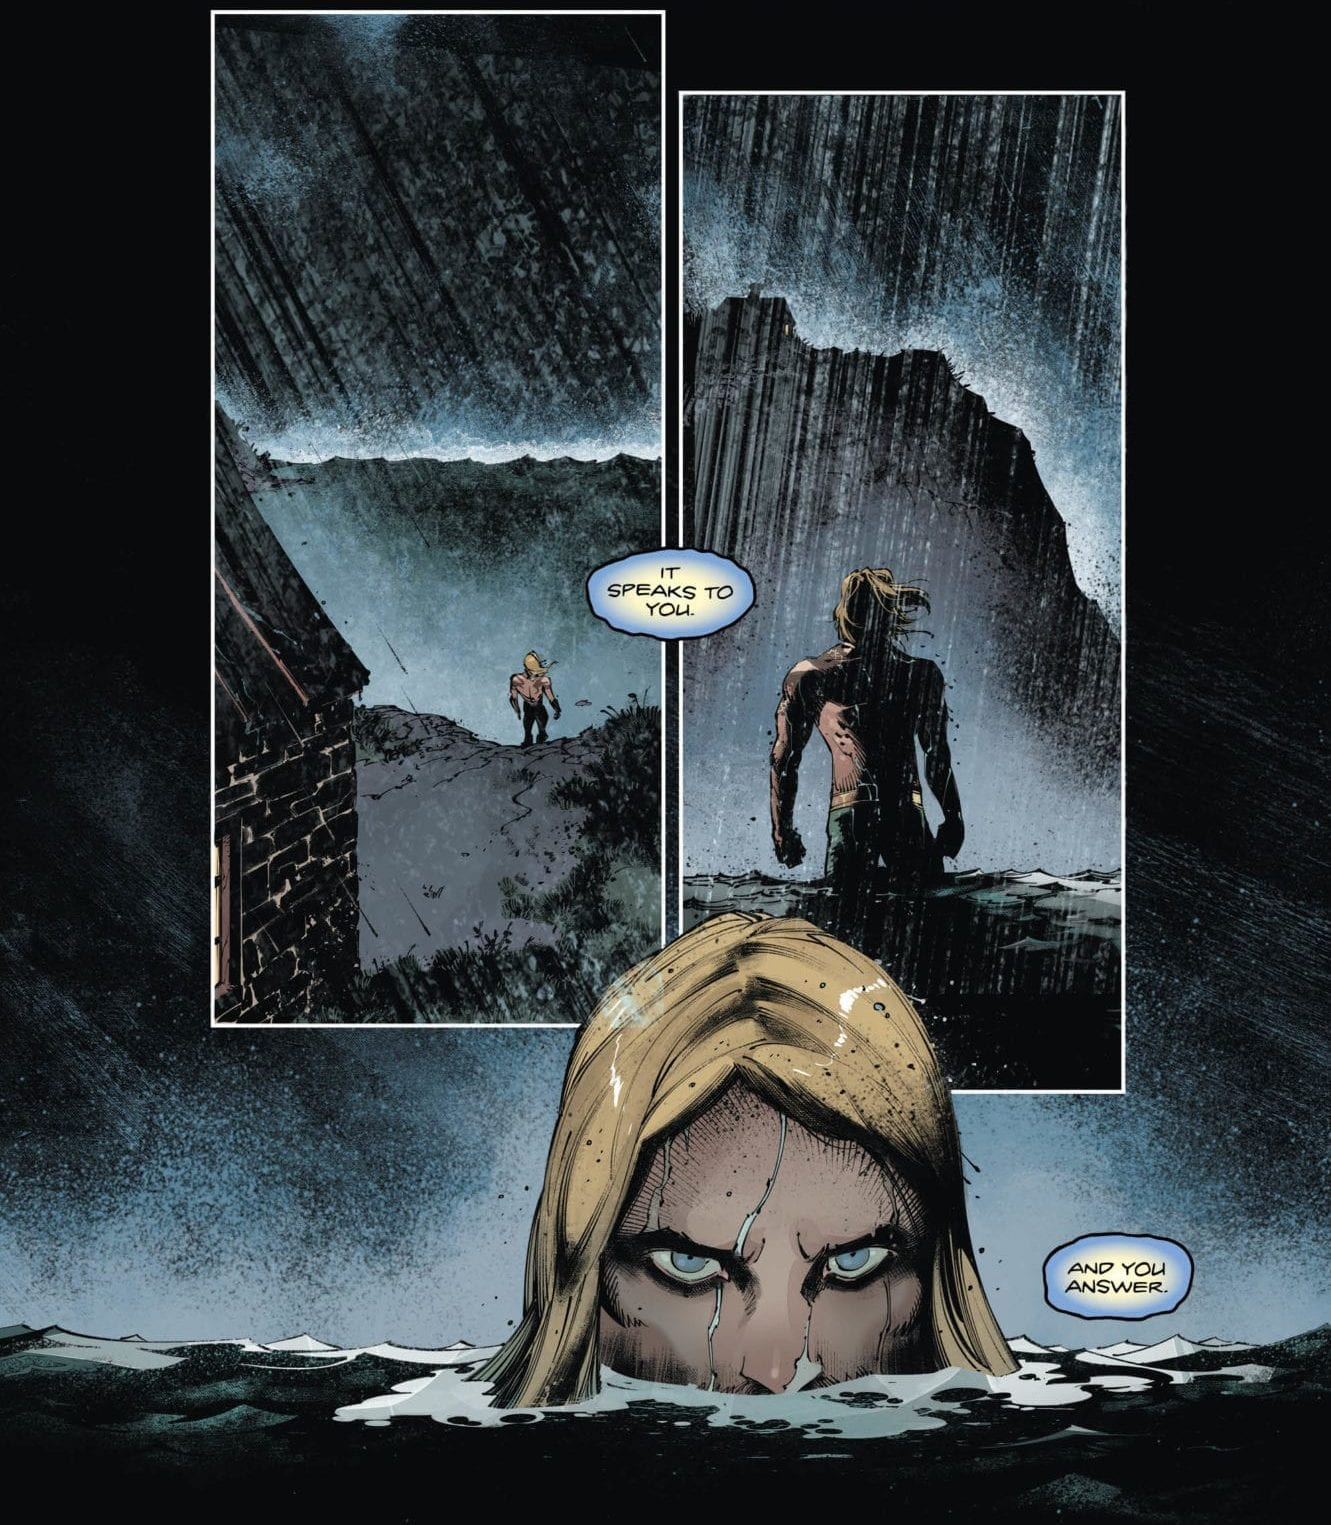 Aquaman searches for his memories